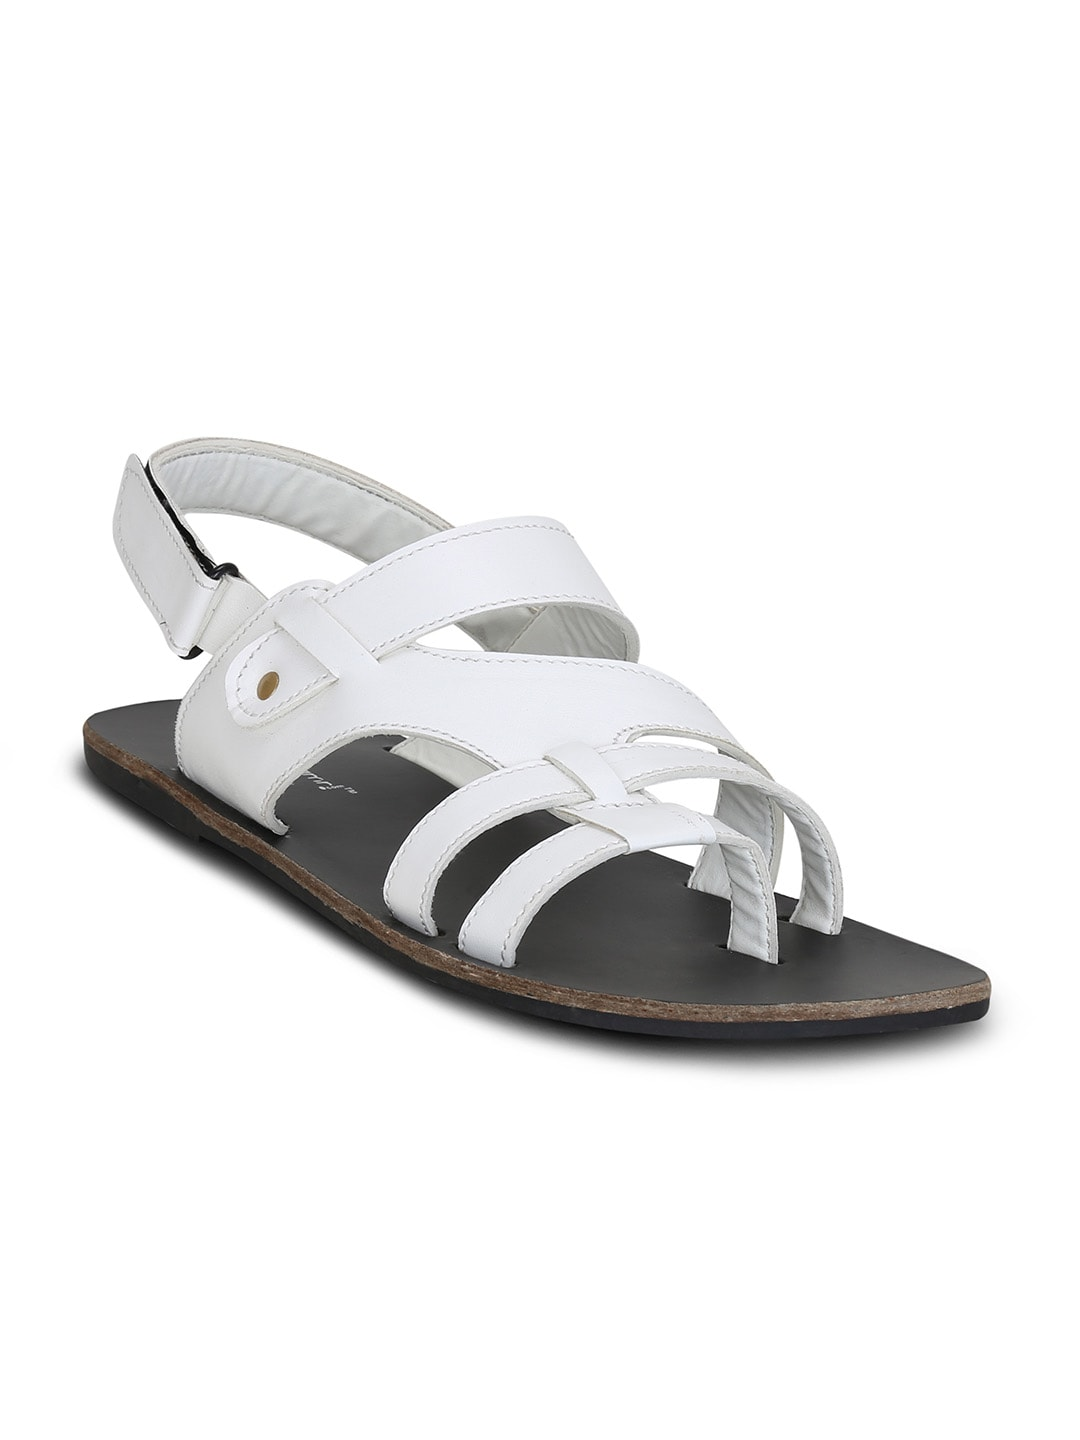 74dd5f9a7 White Sandals - Buy White Sandals Online in India